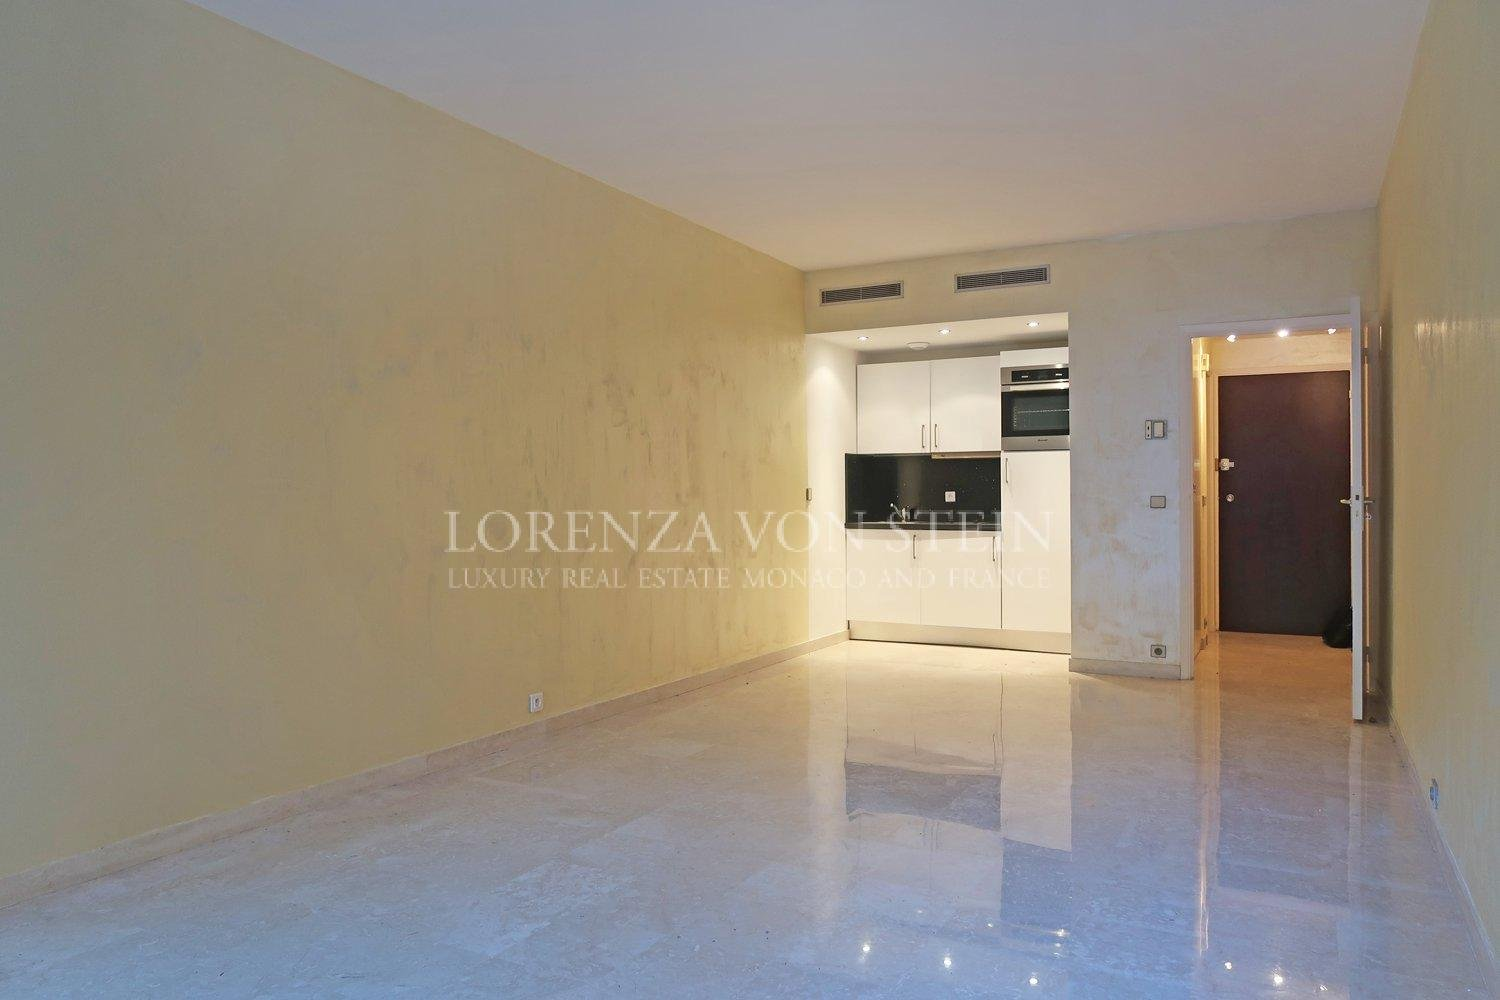 lorenza von stein property for sale monaco and apartments for rent